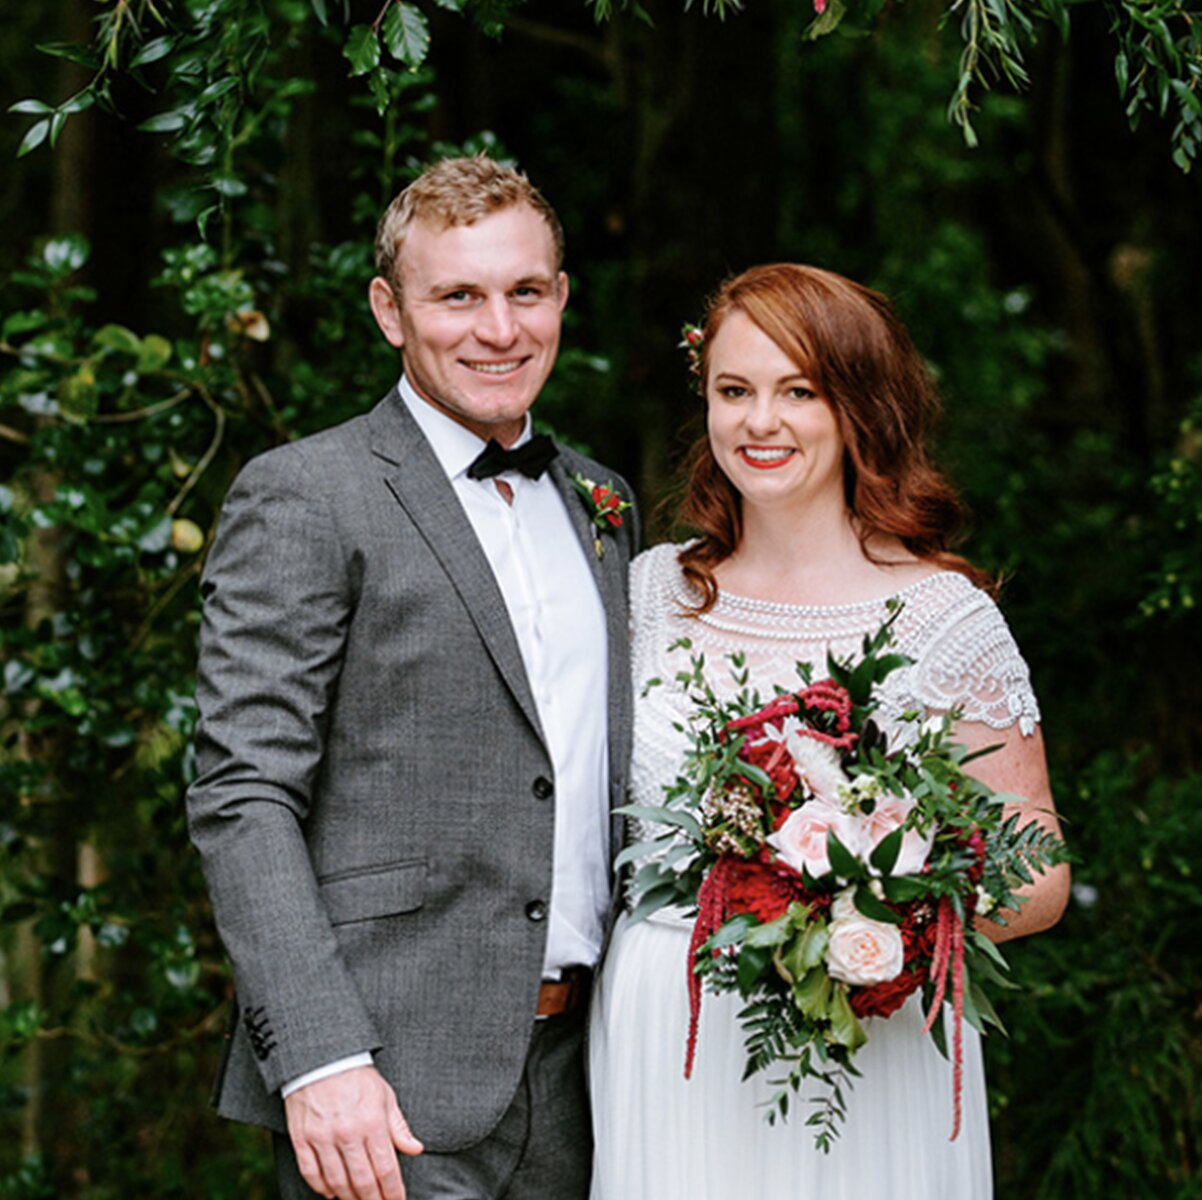 sydney-wedding-flower-packages-prices-cheap-affordable